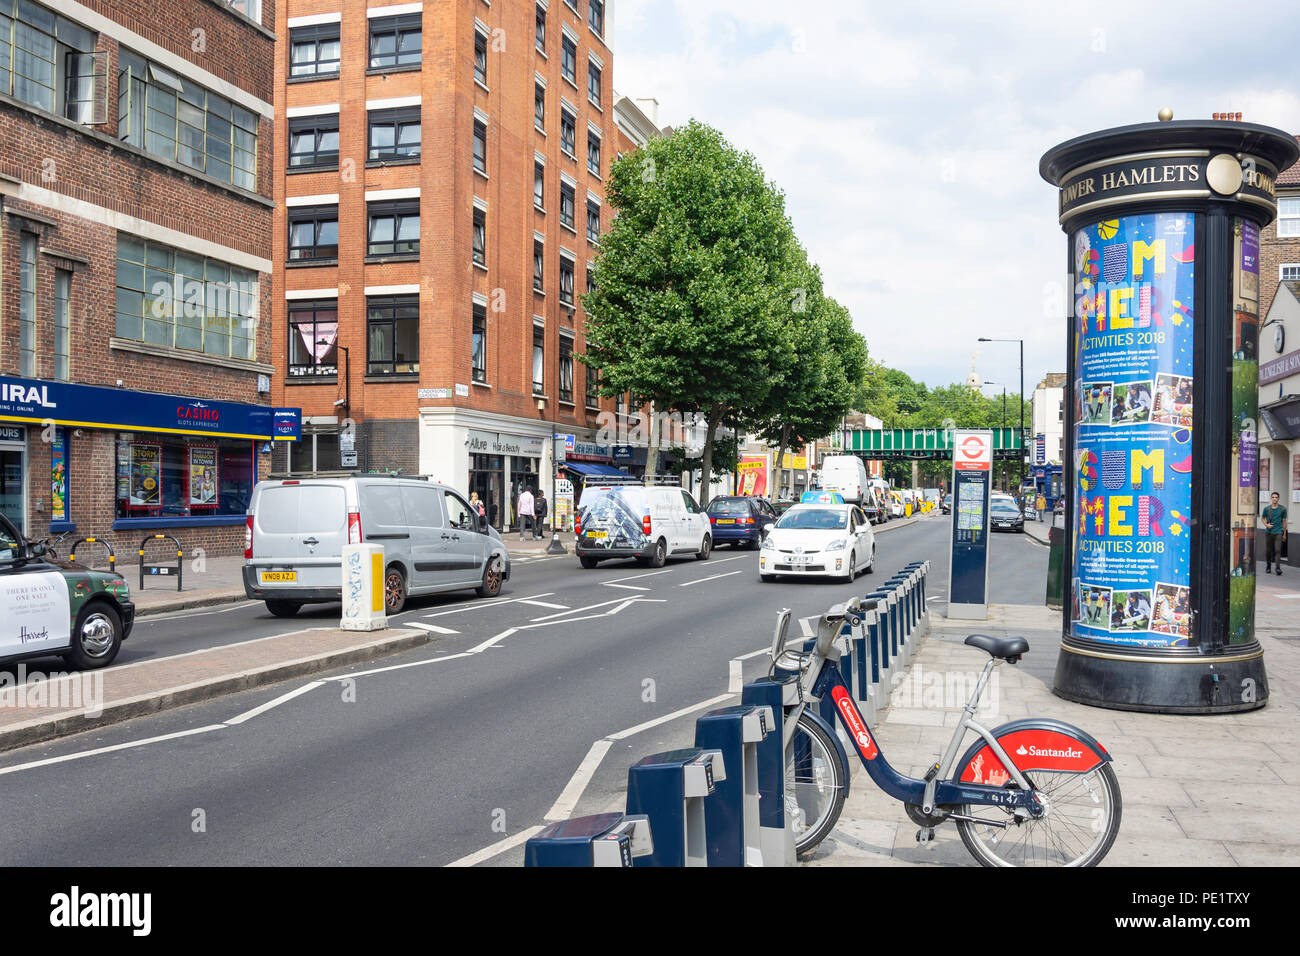 Bethnal Green Road, Bethnal Green, The London Borough of Tower Hamlets, Greater London, England, United Kingdom - Stock Image